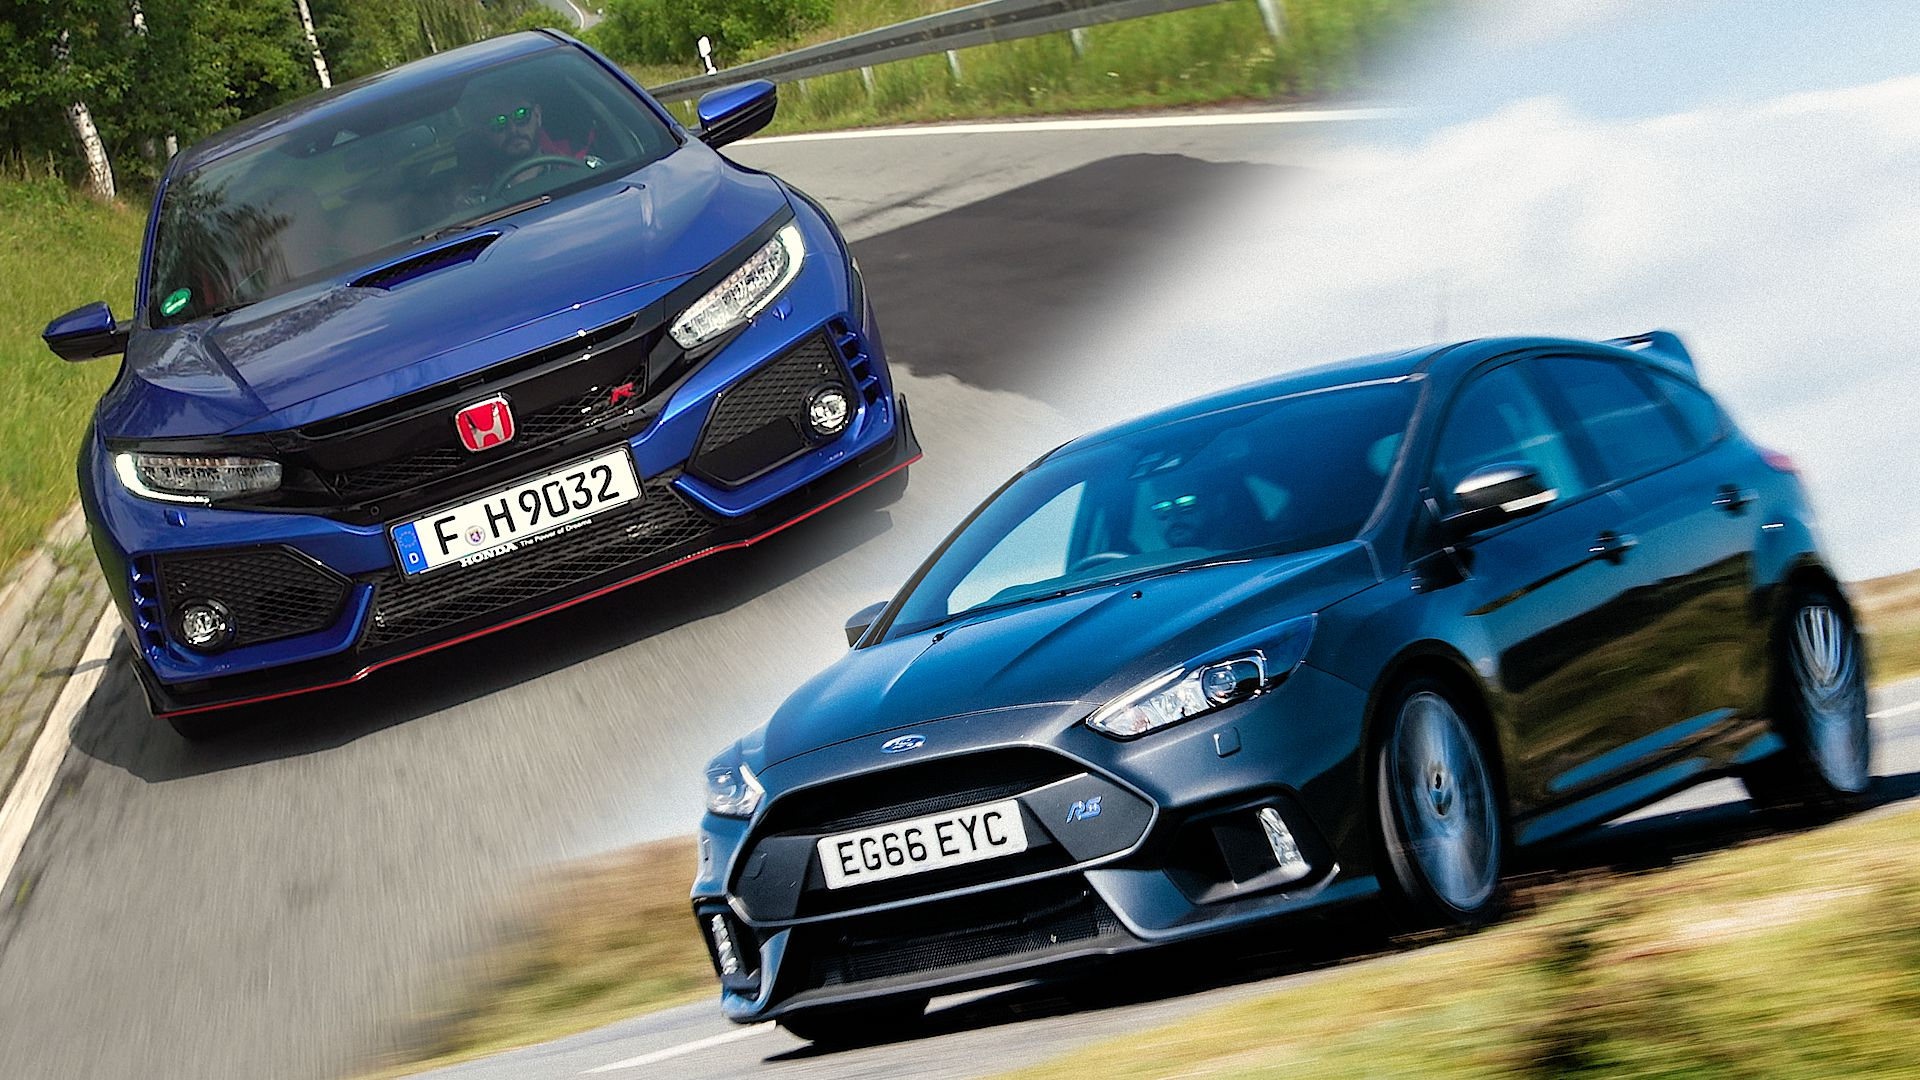 Can the Civic Type R steal the Hot Hatch crown from the Focus RS